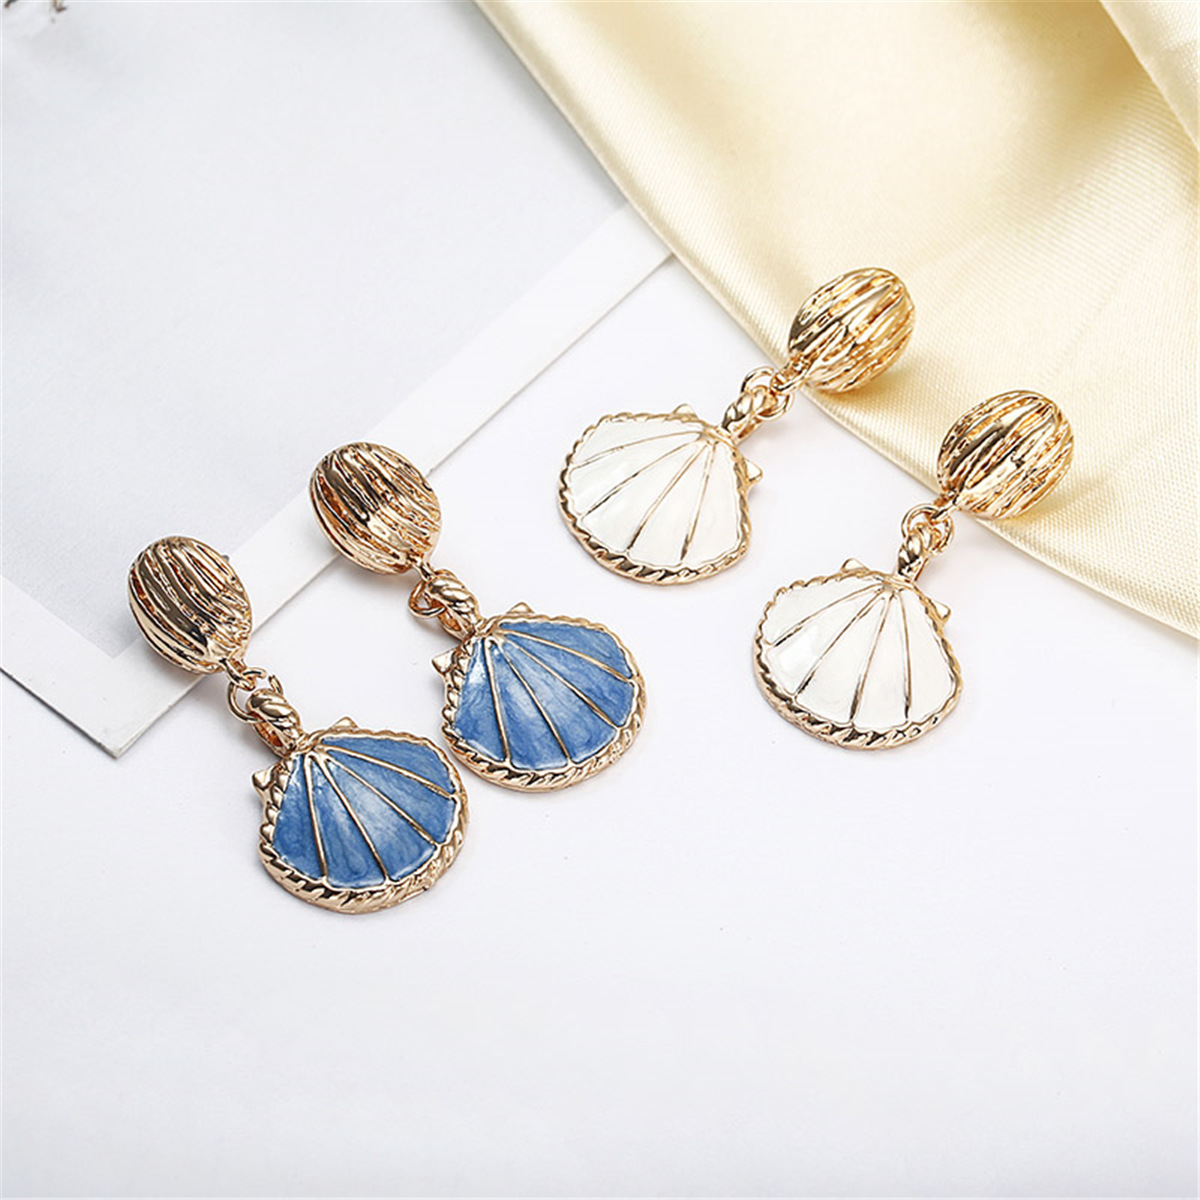 New fashion color retention plating retro marine wind shell ear pin earrings wholesale NHPF203606